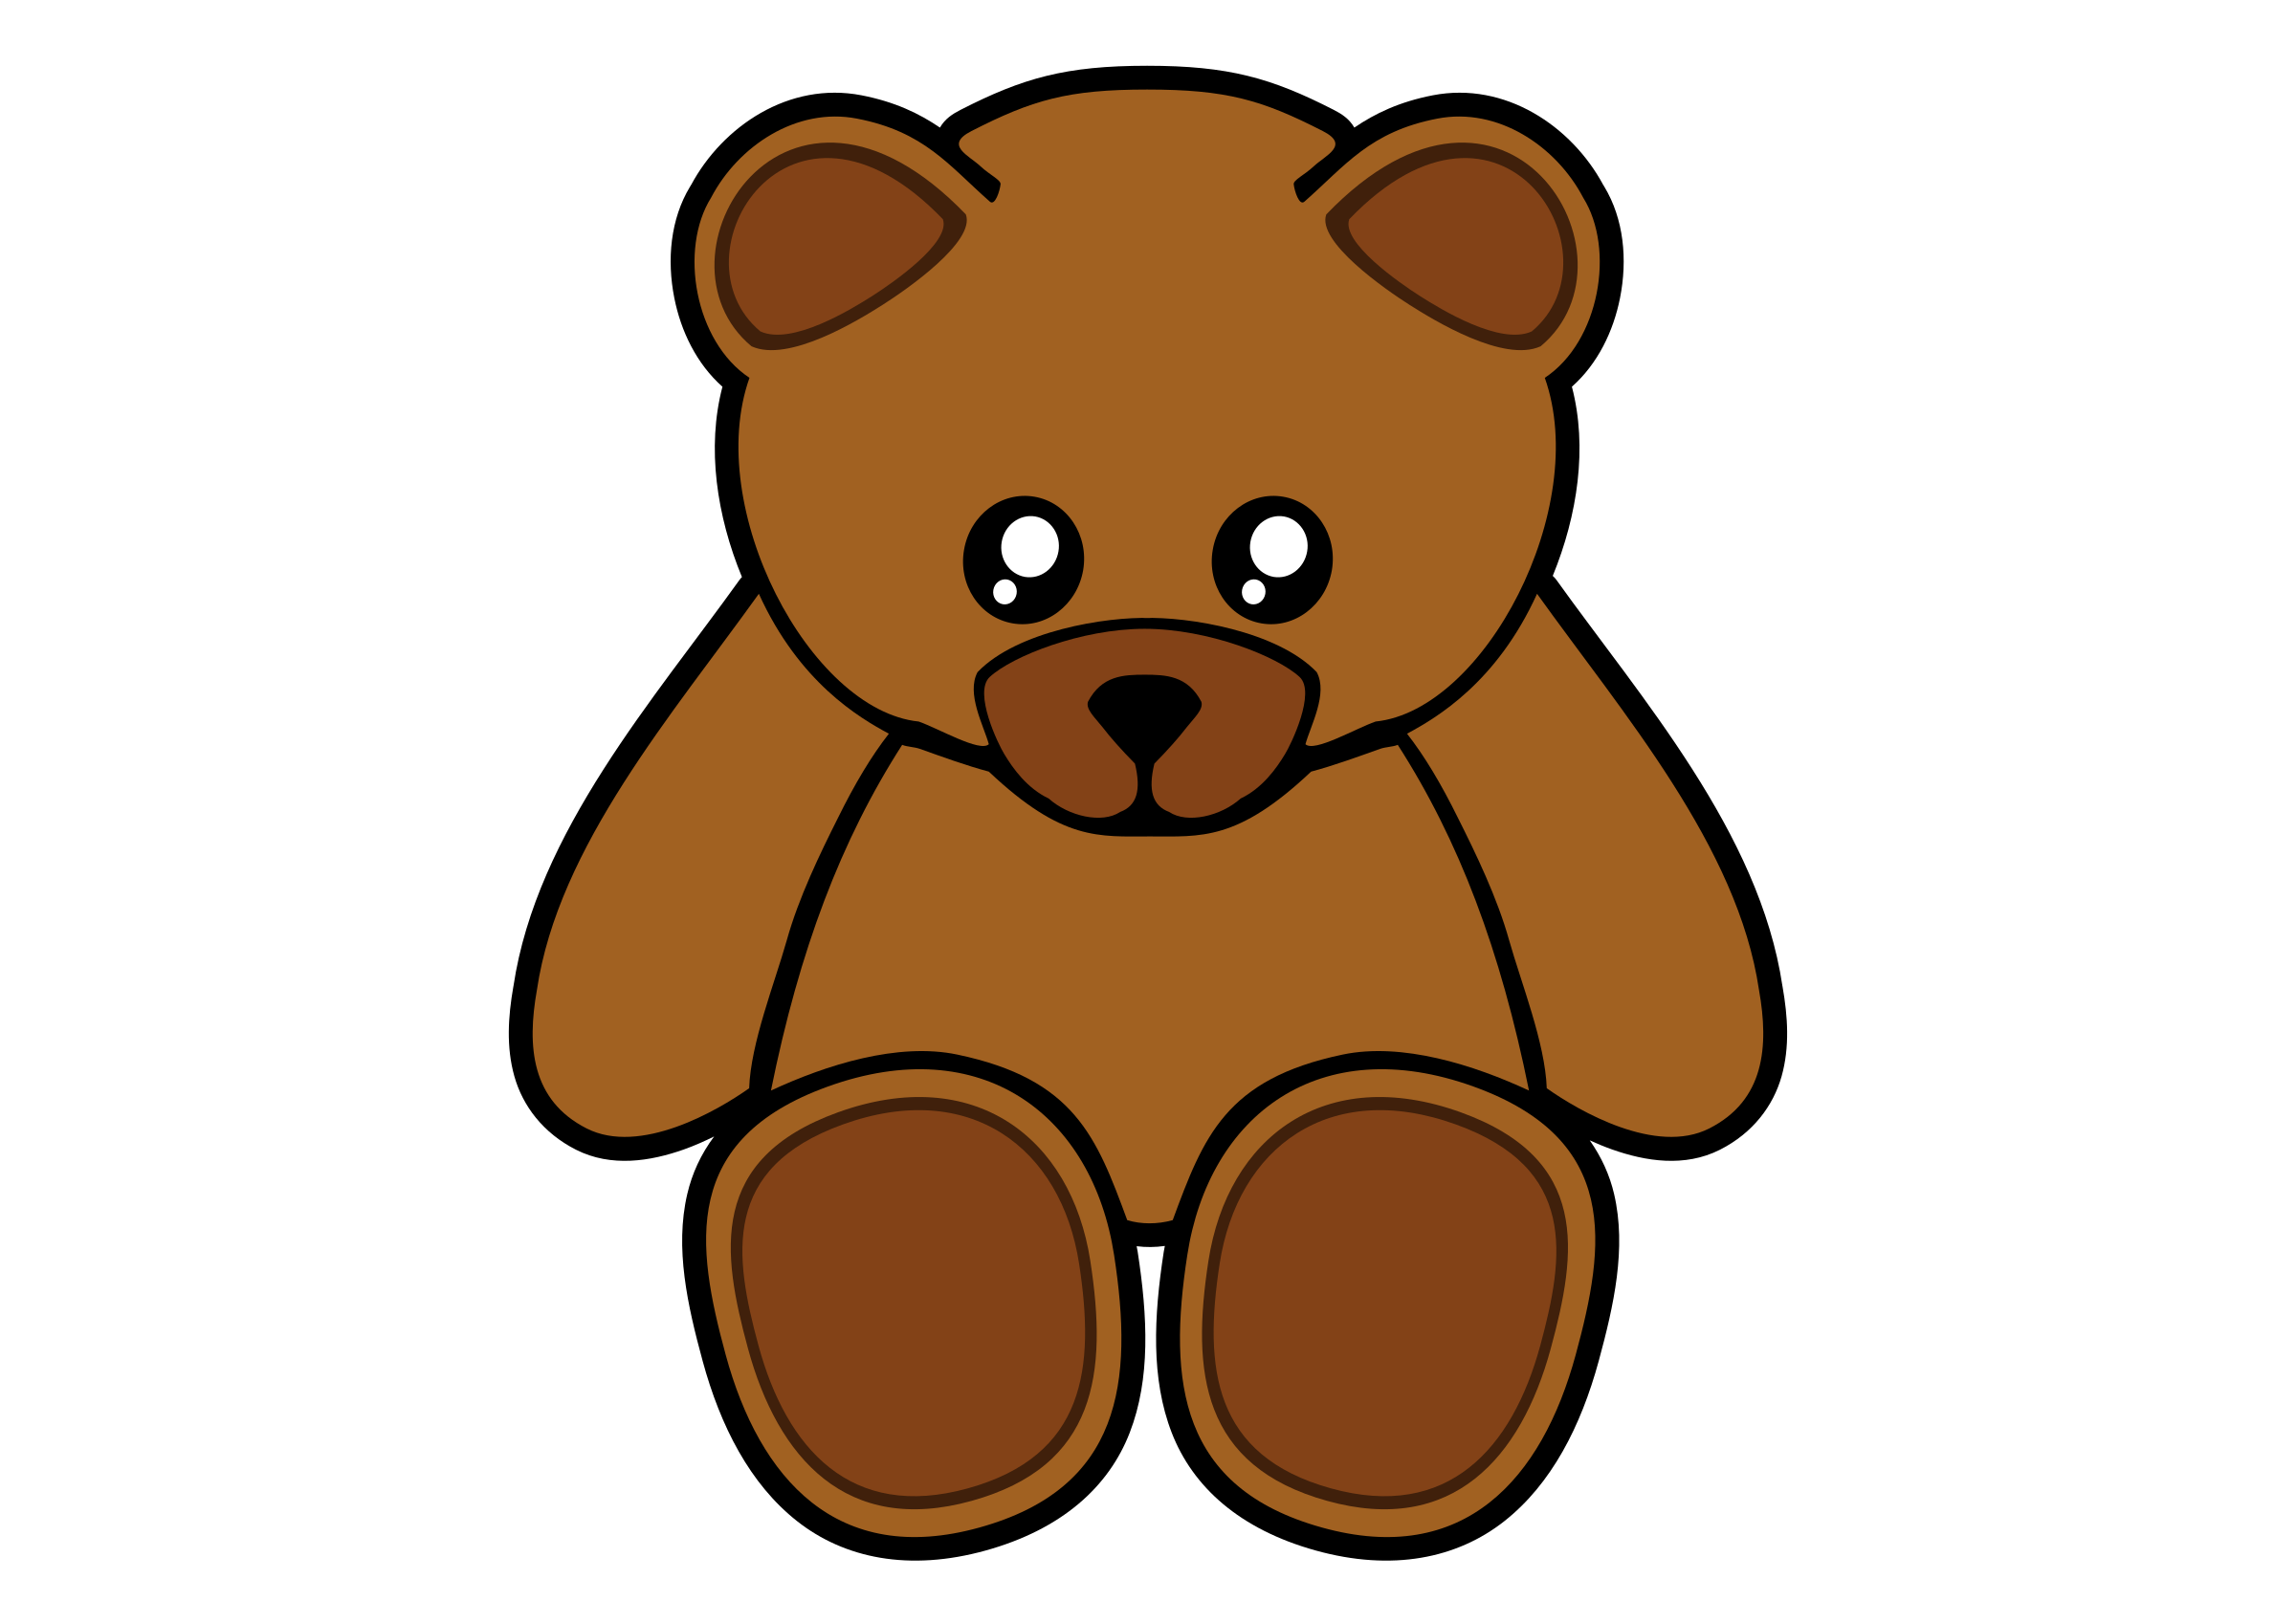 Simple Teddy Bear by Gigglish